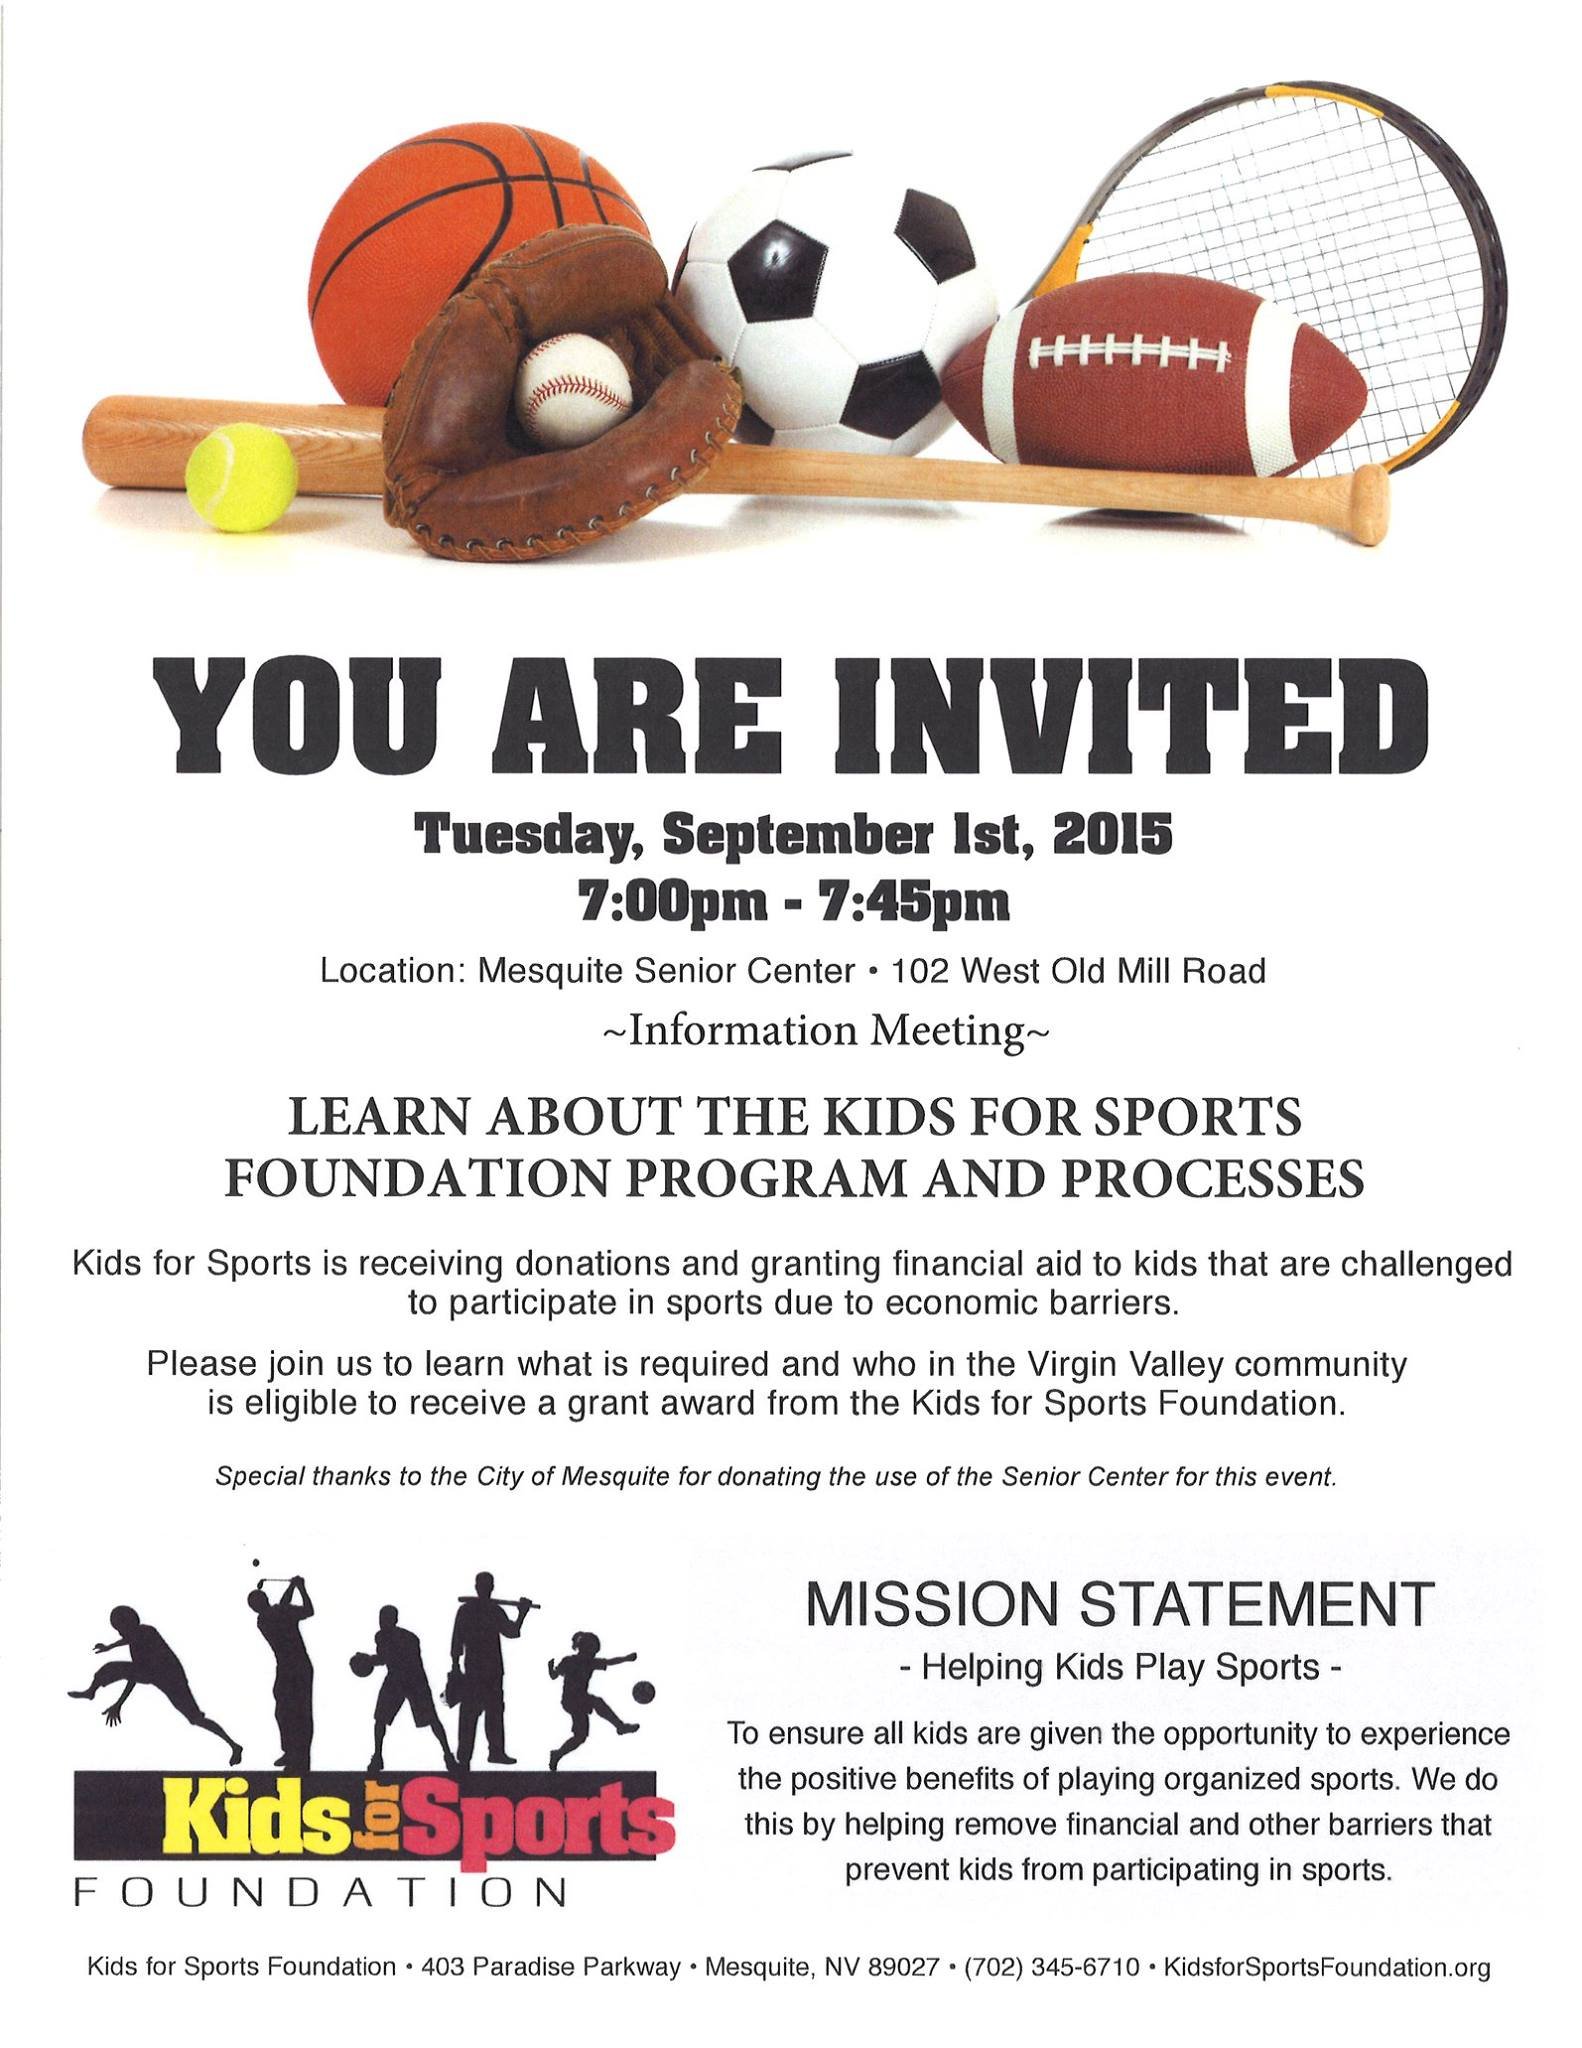 Kids for Sports Meeting Tuesday